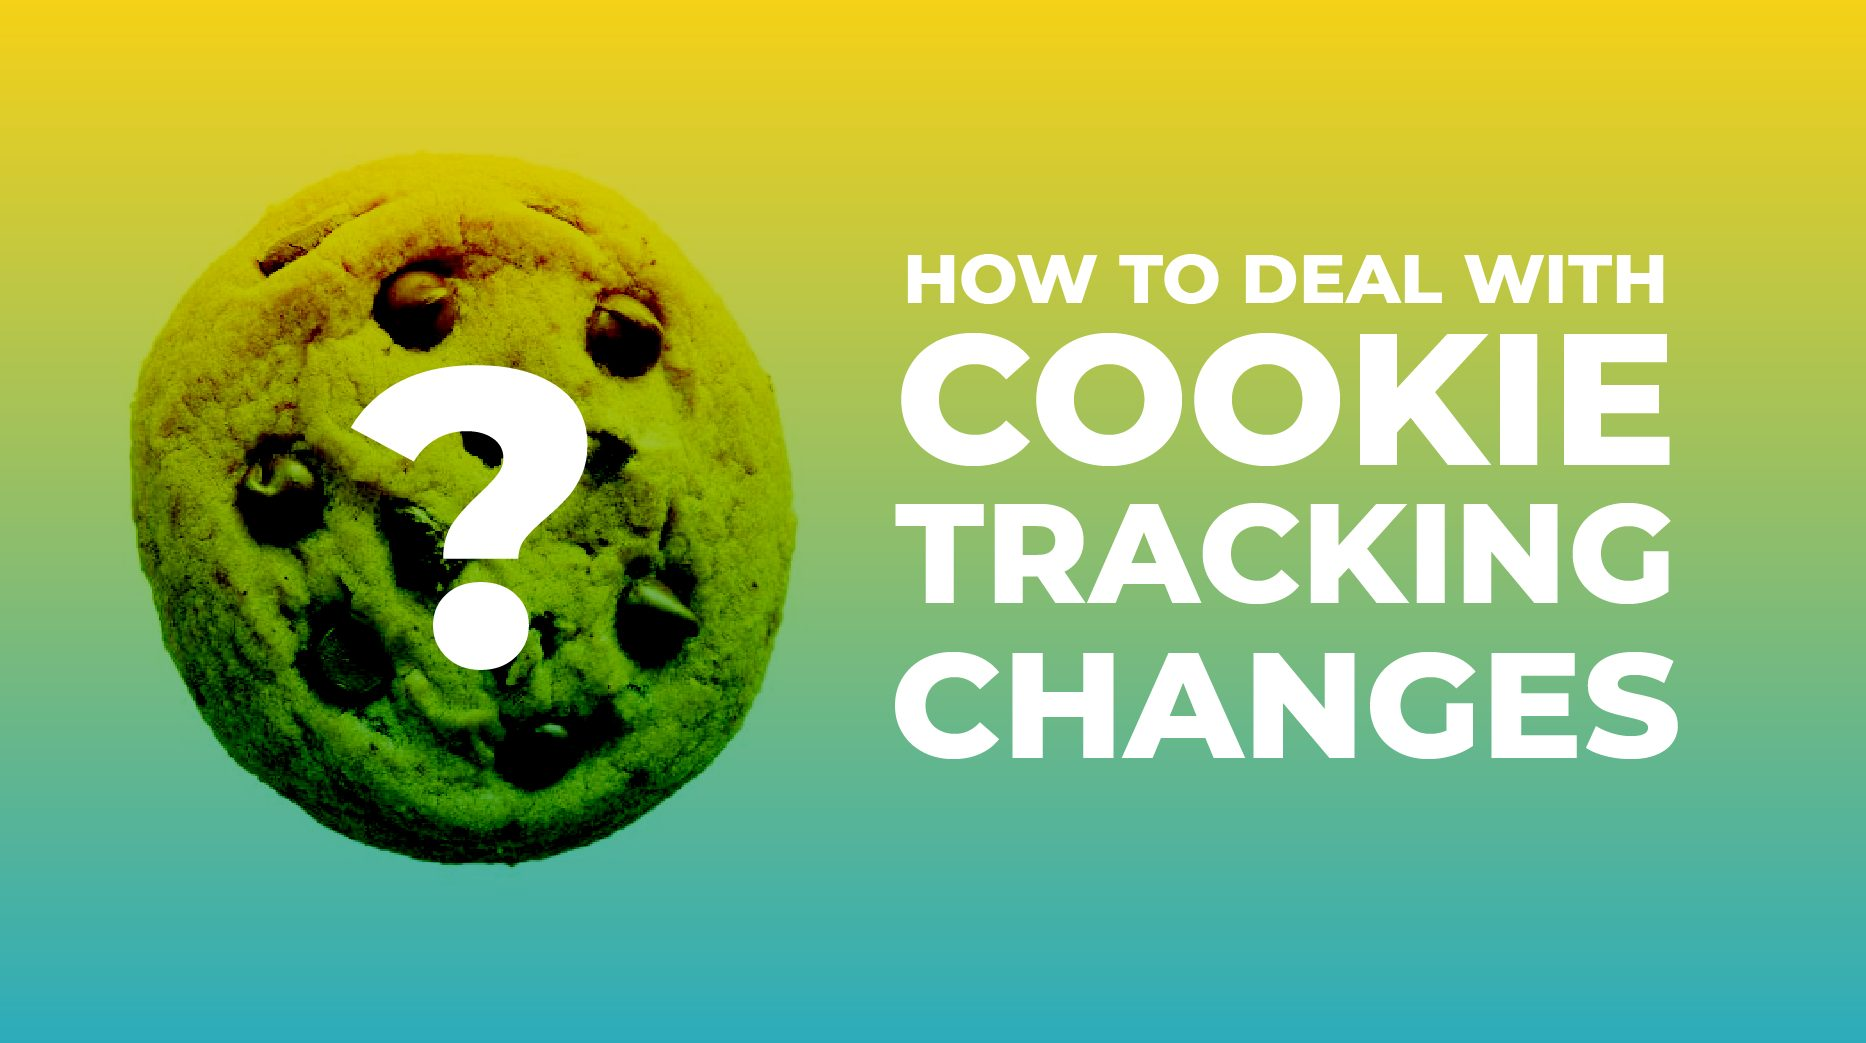 Our top tips on how to deal with cookie tracking changes